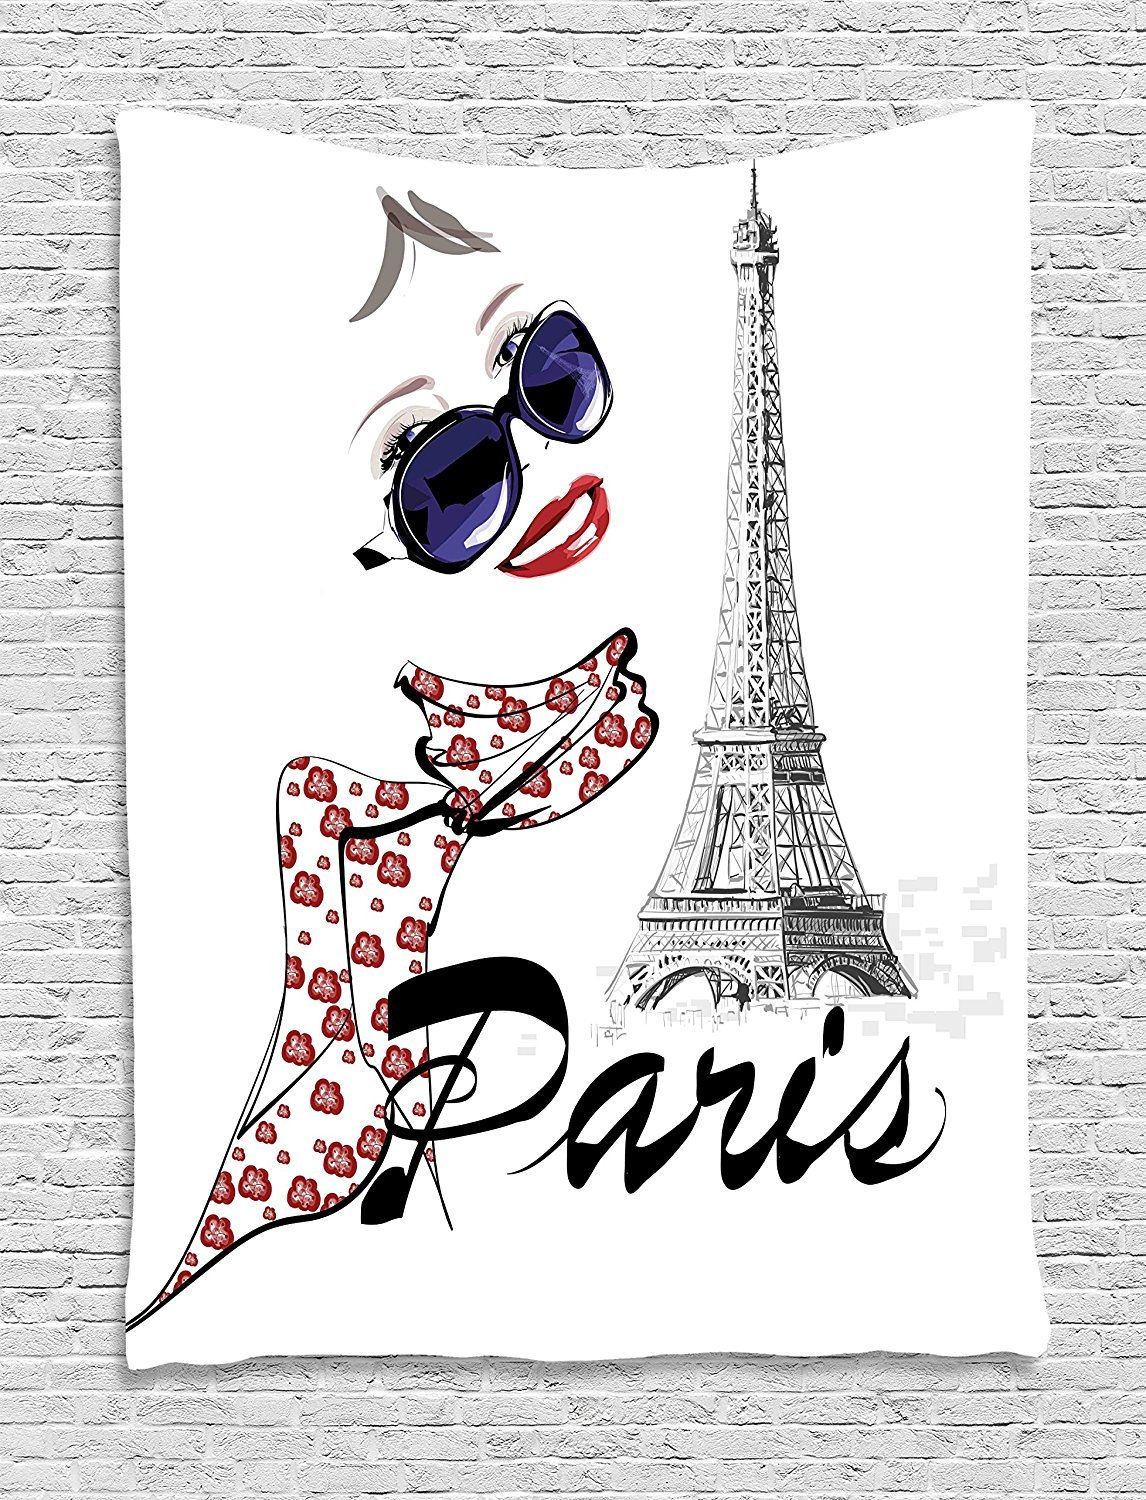 asddcdfdd Paris Tapestry, Sketchy Image of a Woman Smiling with Scarf and Landmark Eiffel Tower, Wall Hanging for Bedroom Living Room Dorm, 60 W x 80 L Inches, Dark Blue Black and White